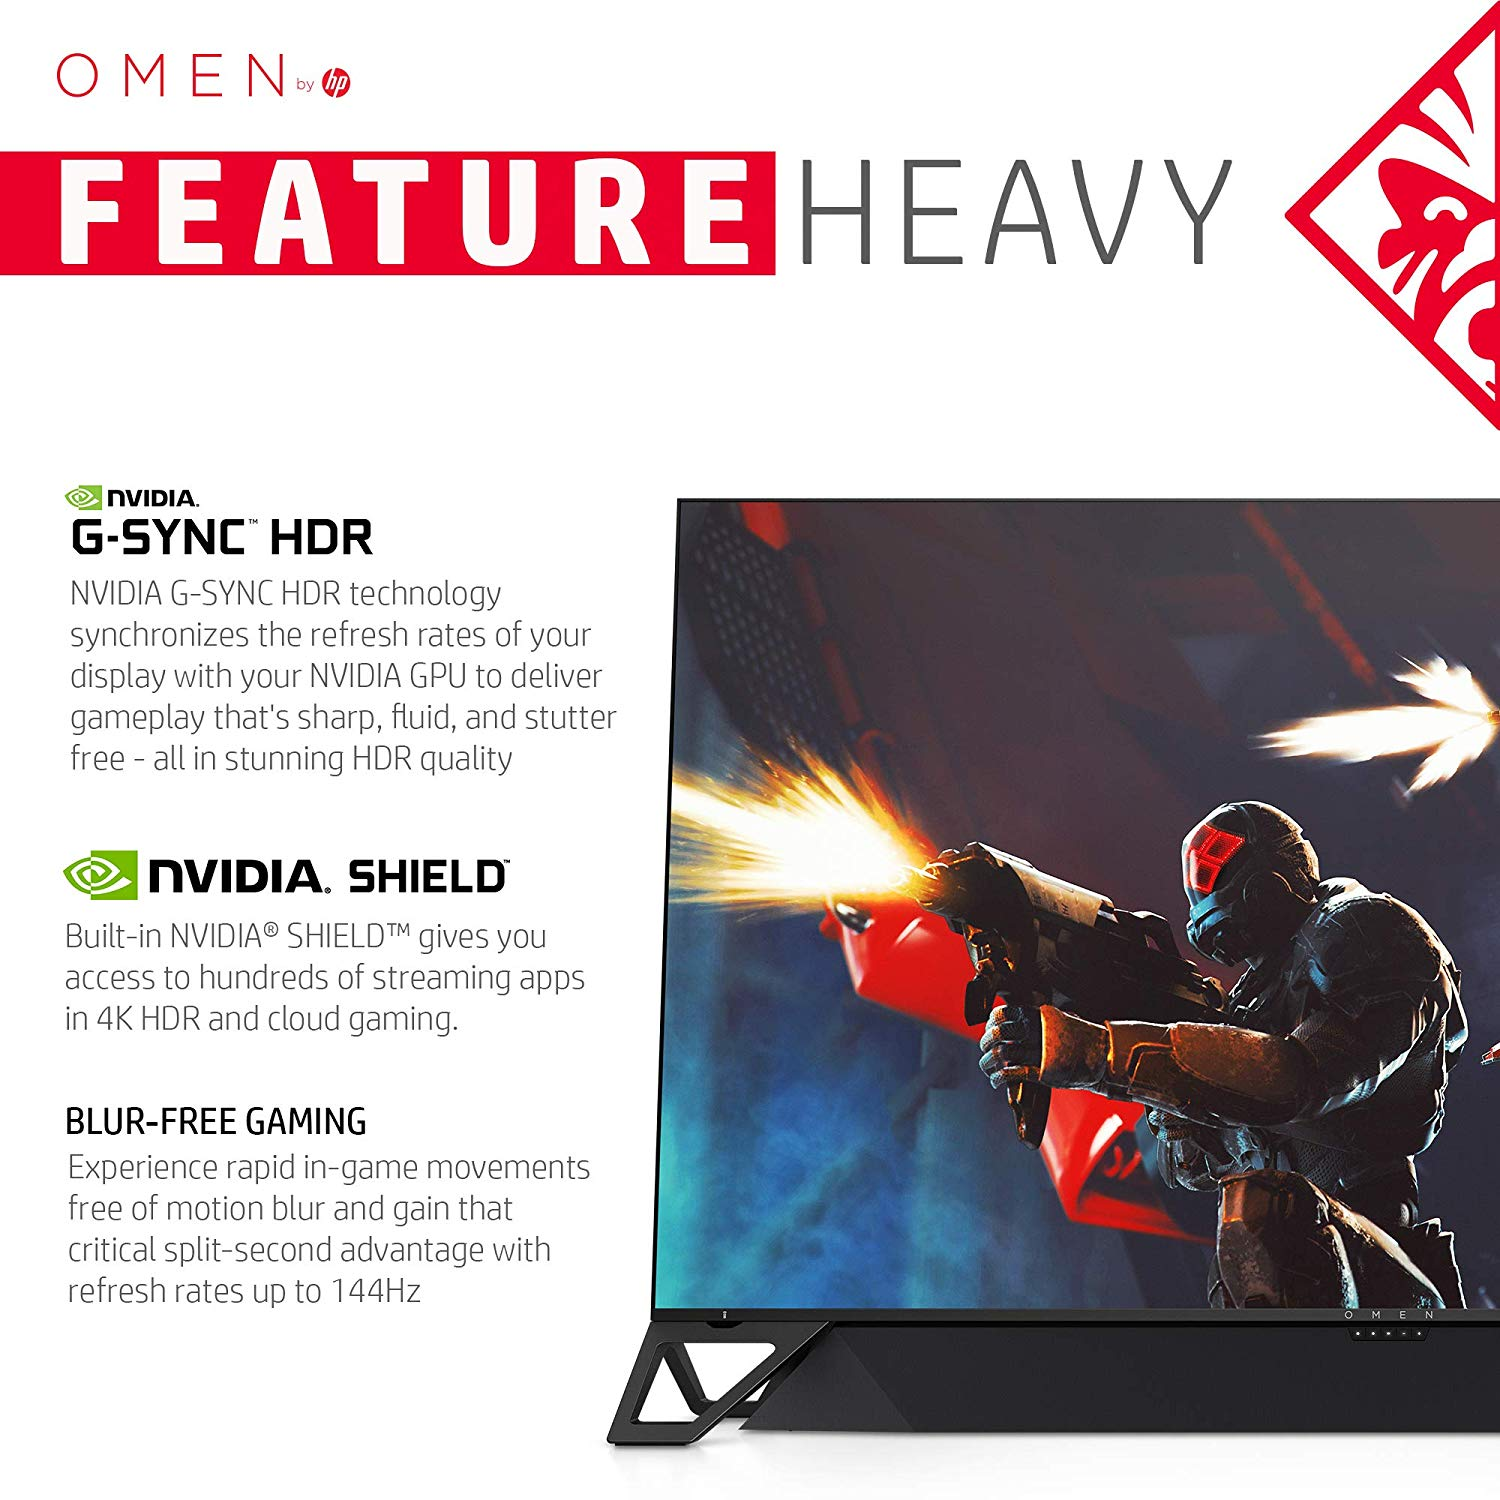 HP OMEN X Emperium 65″ BFGD Gaming Monitor Now Available For